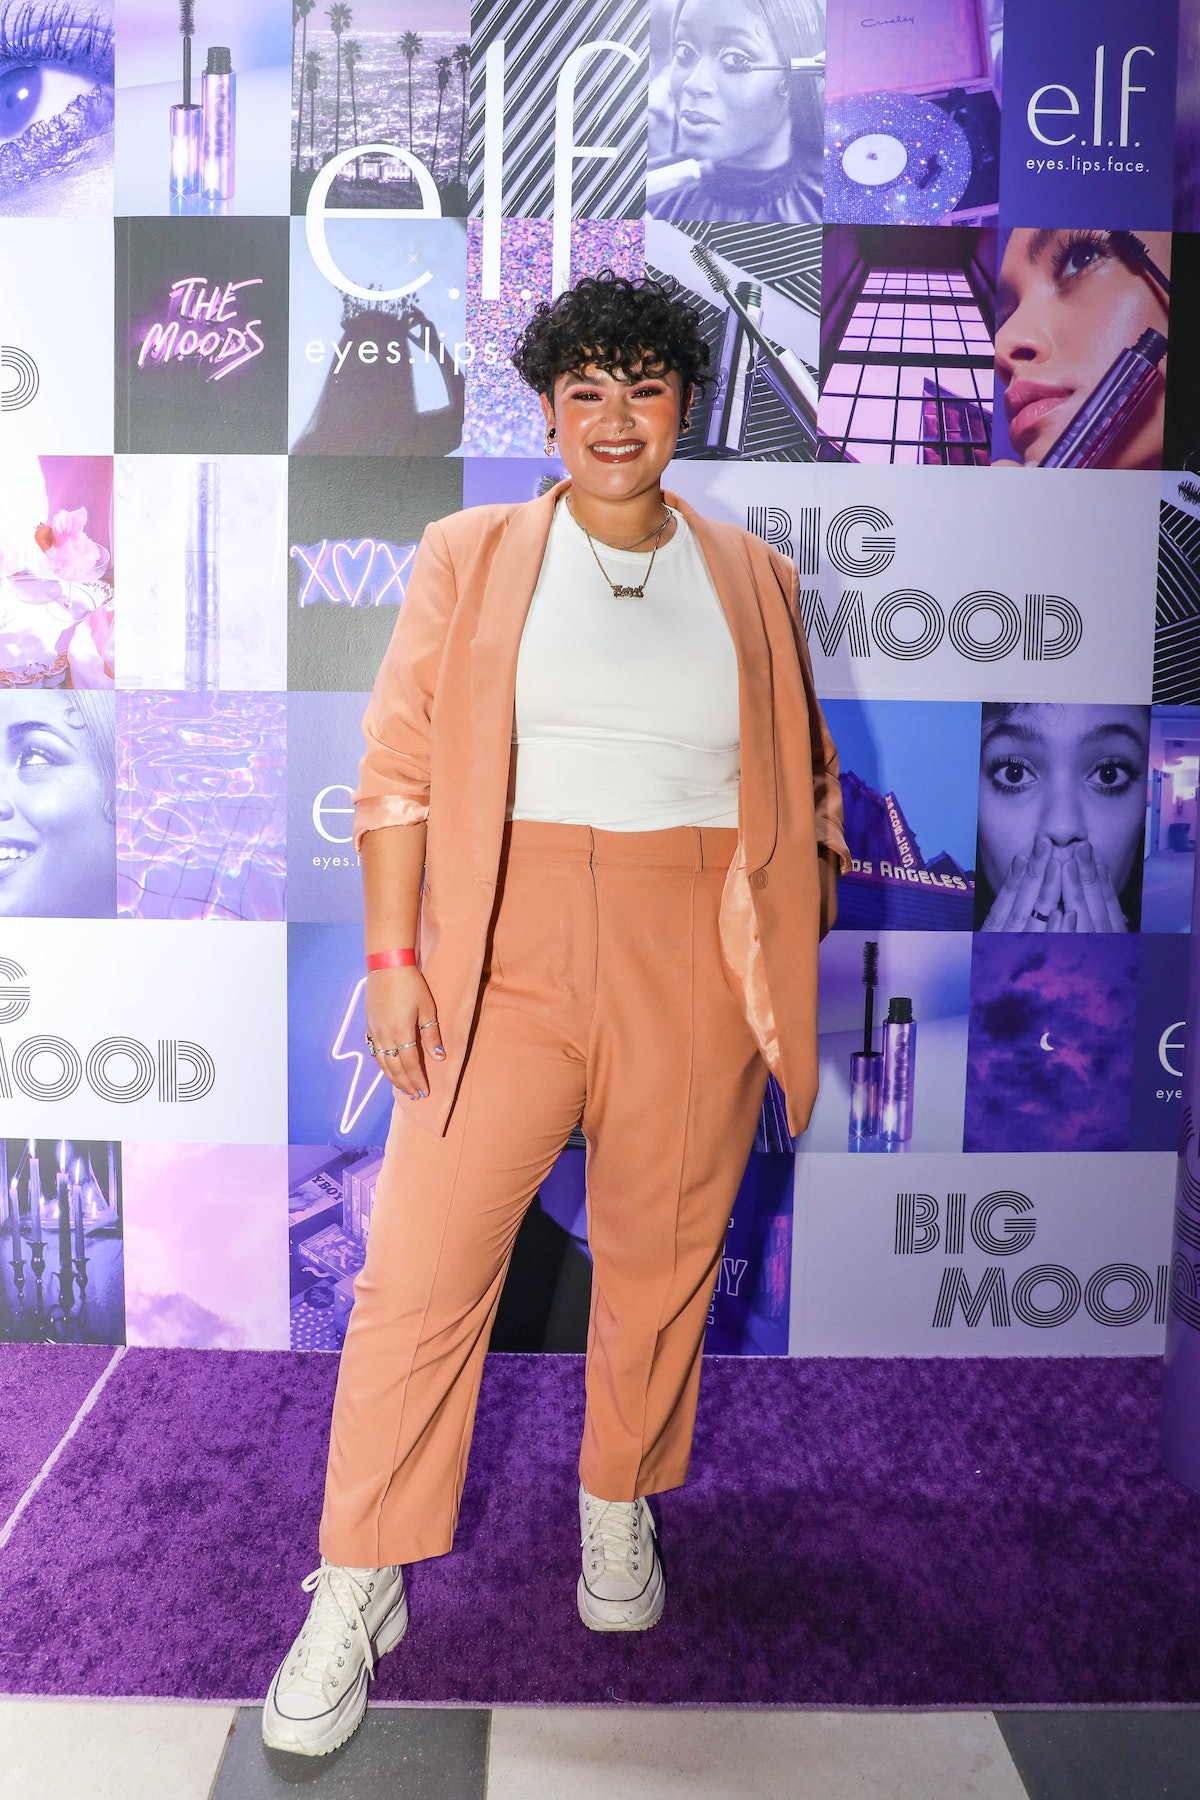 Makeup artist and beauty influencer Karol Rodriguez attends a launch event for e.l.f.'s Big Mood Mas...